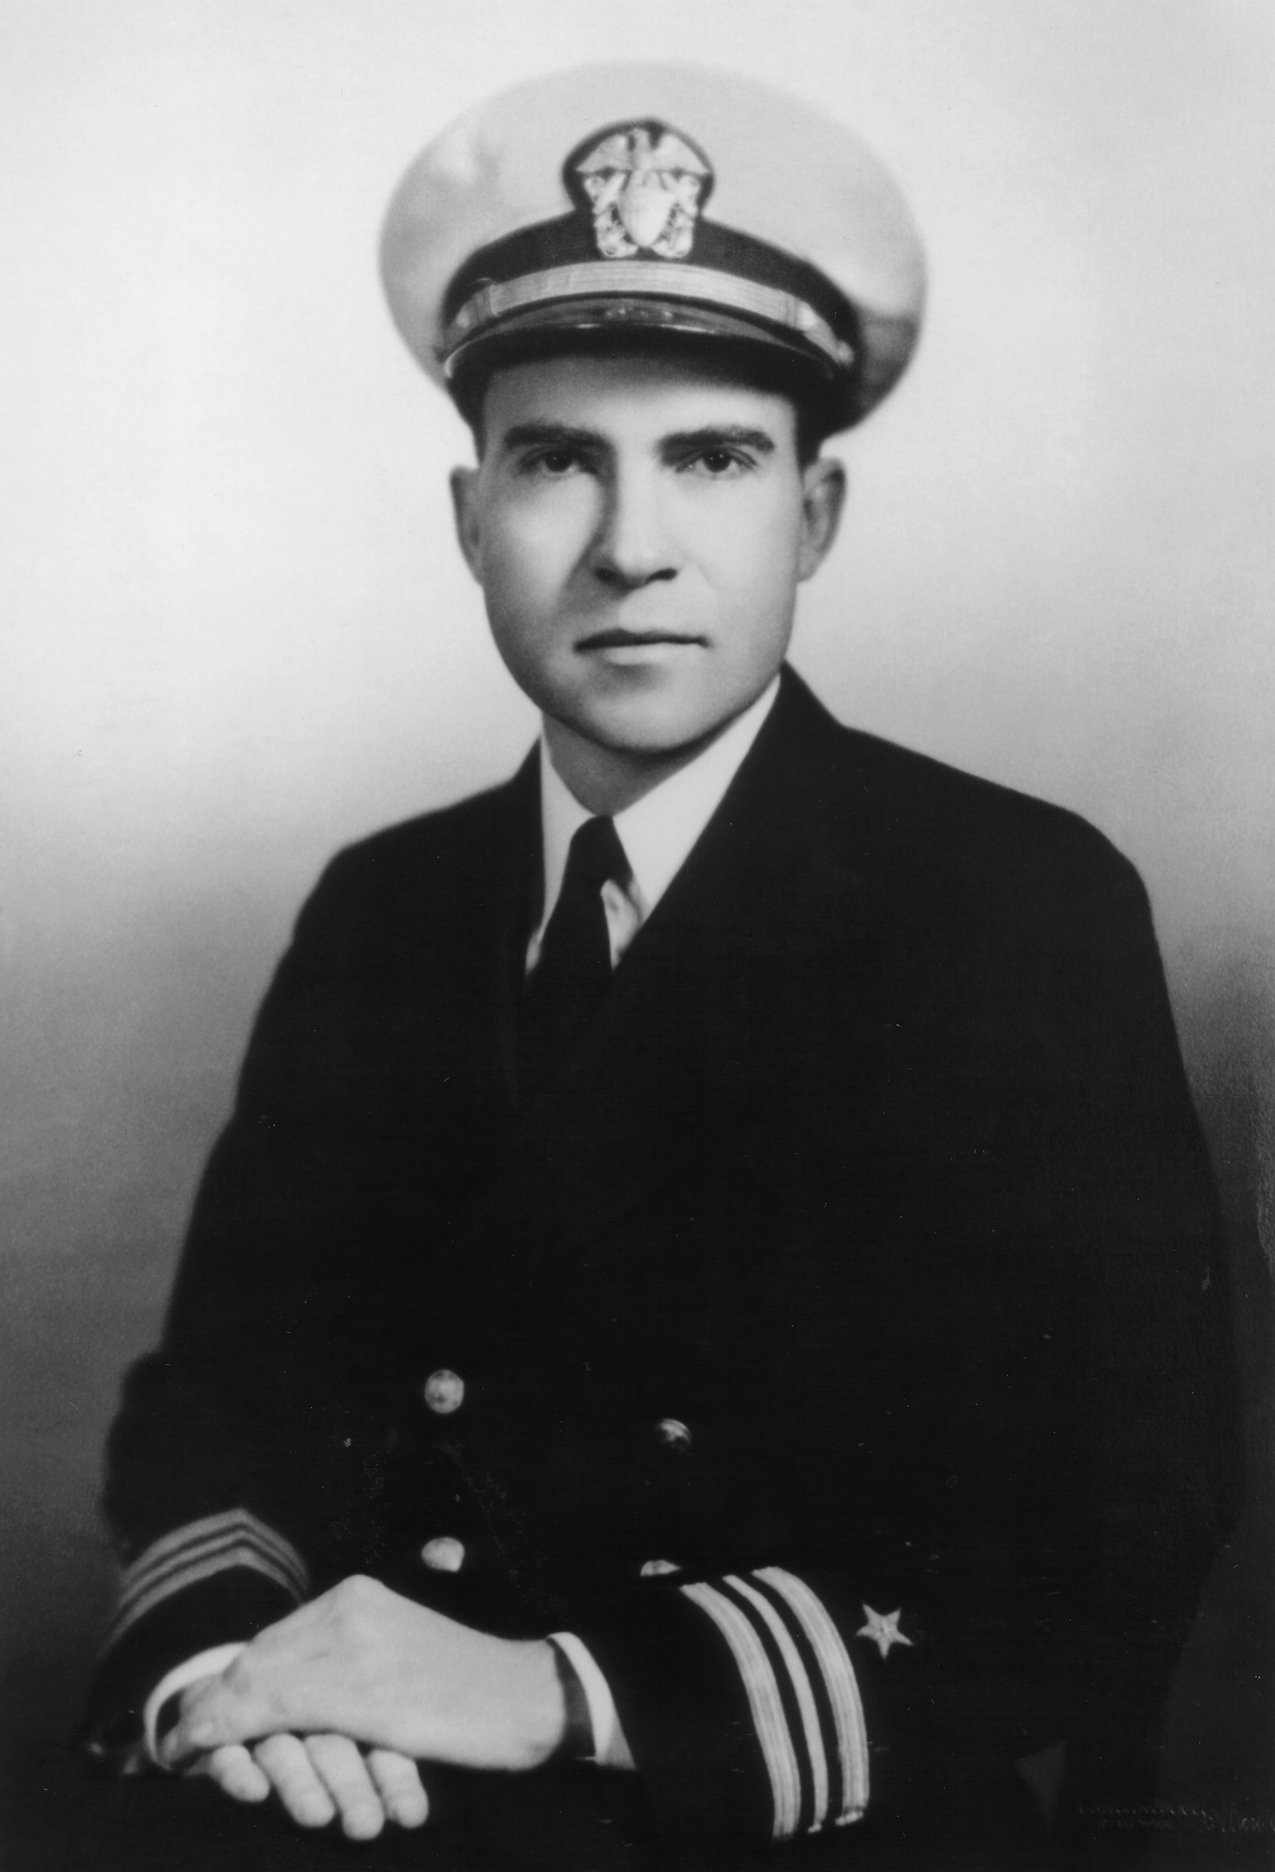 1945 photograph of Lt. Commander Richard Nixon wearing his Navy uniform. When Richard Nixon ran for Congress in 1946 he wore his Navy uniform as he declared at the time that he did not have a civilian suit. Richard Nixon Presidential Library and Museum, used with permission of the Richard Nixon Foundation and Julie Nixon Eisenhower.